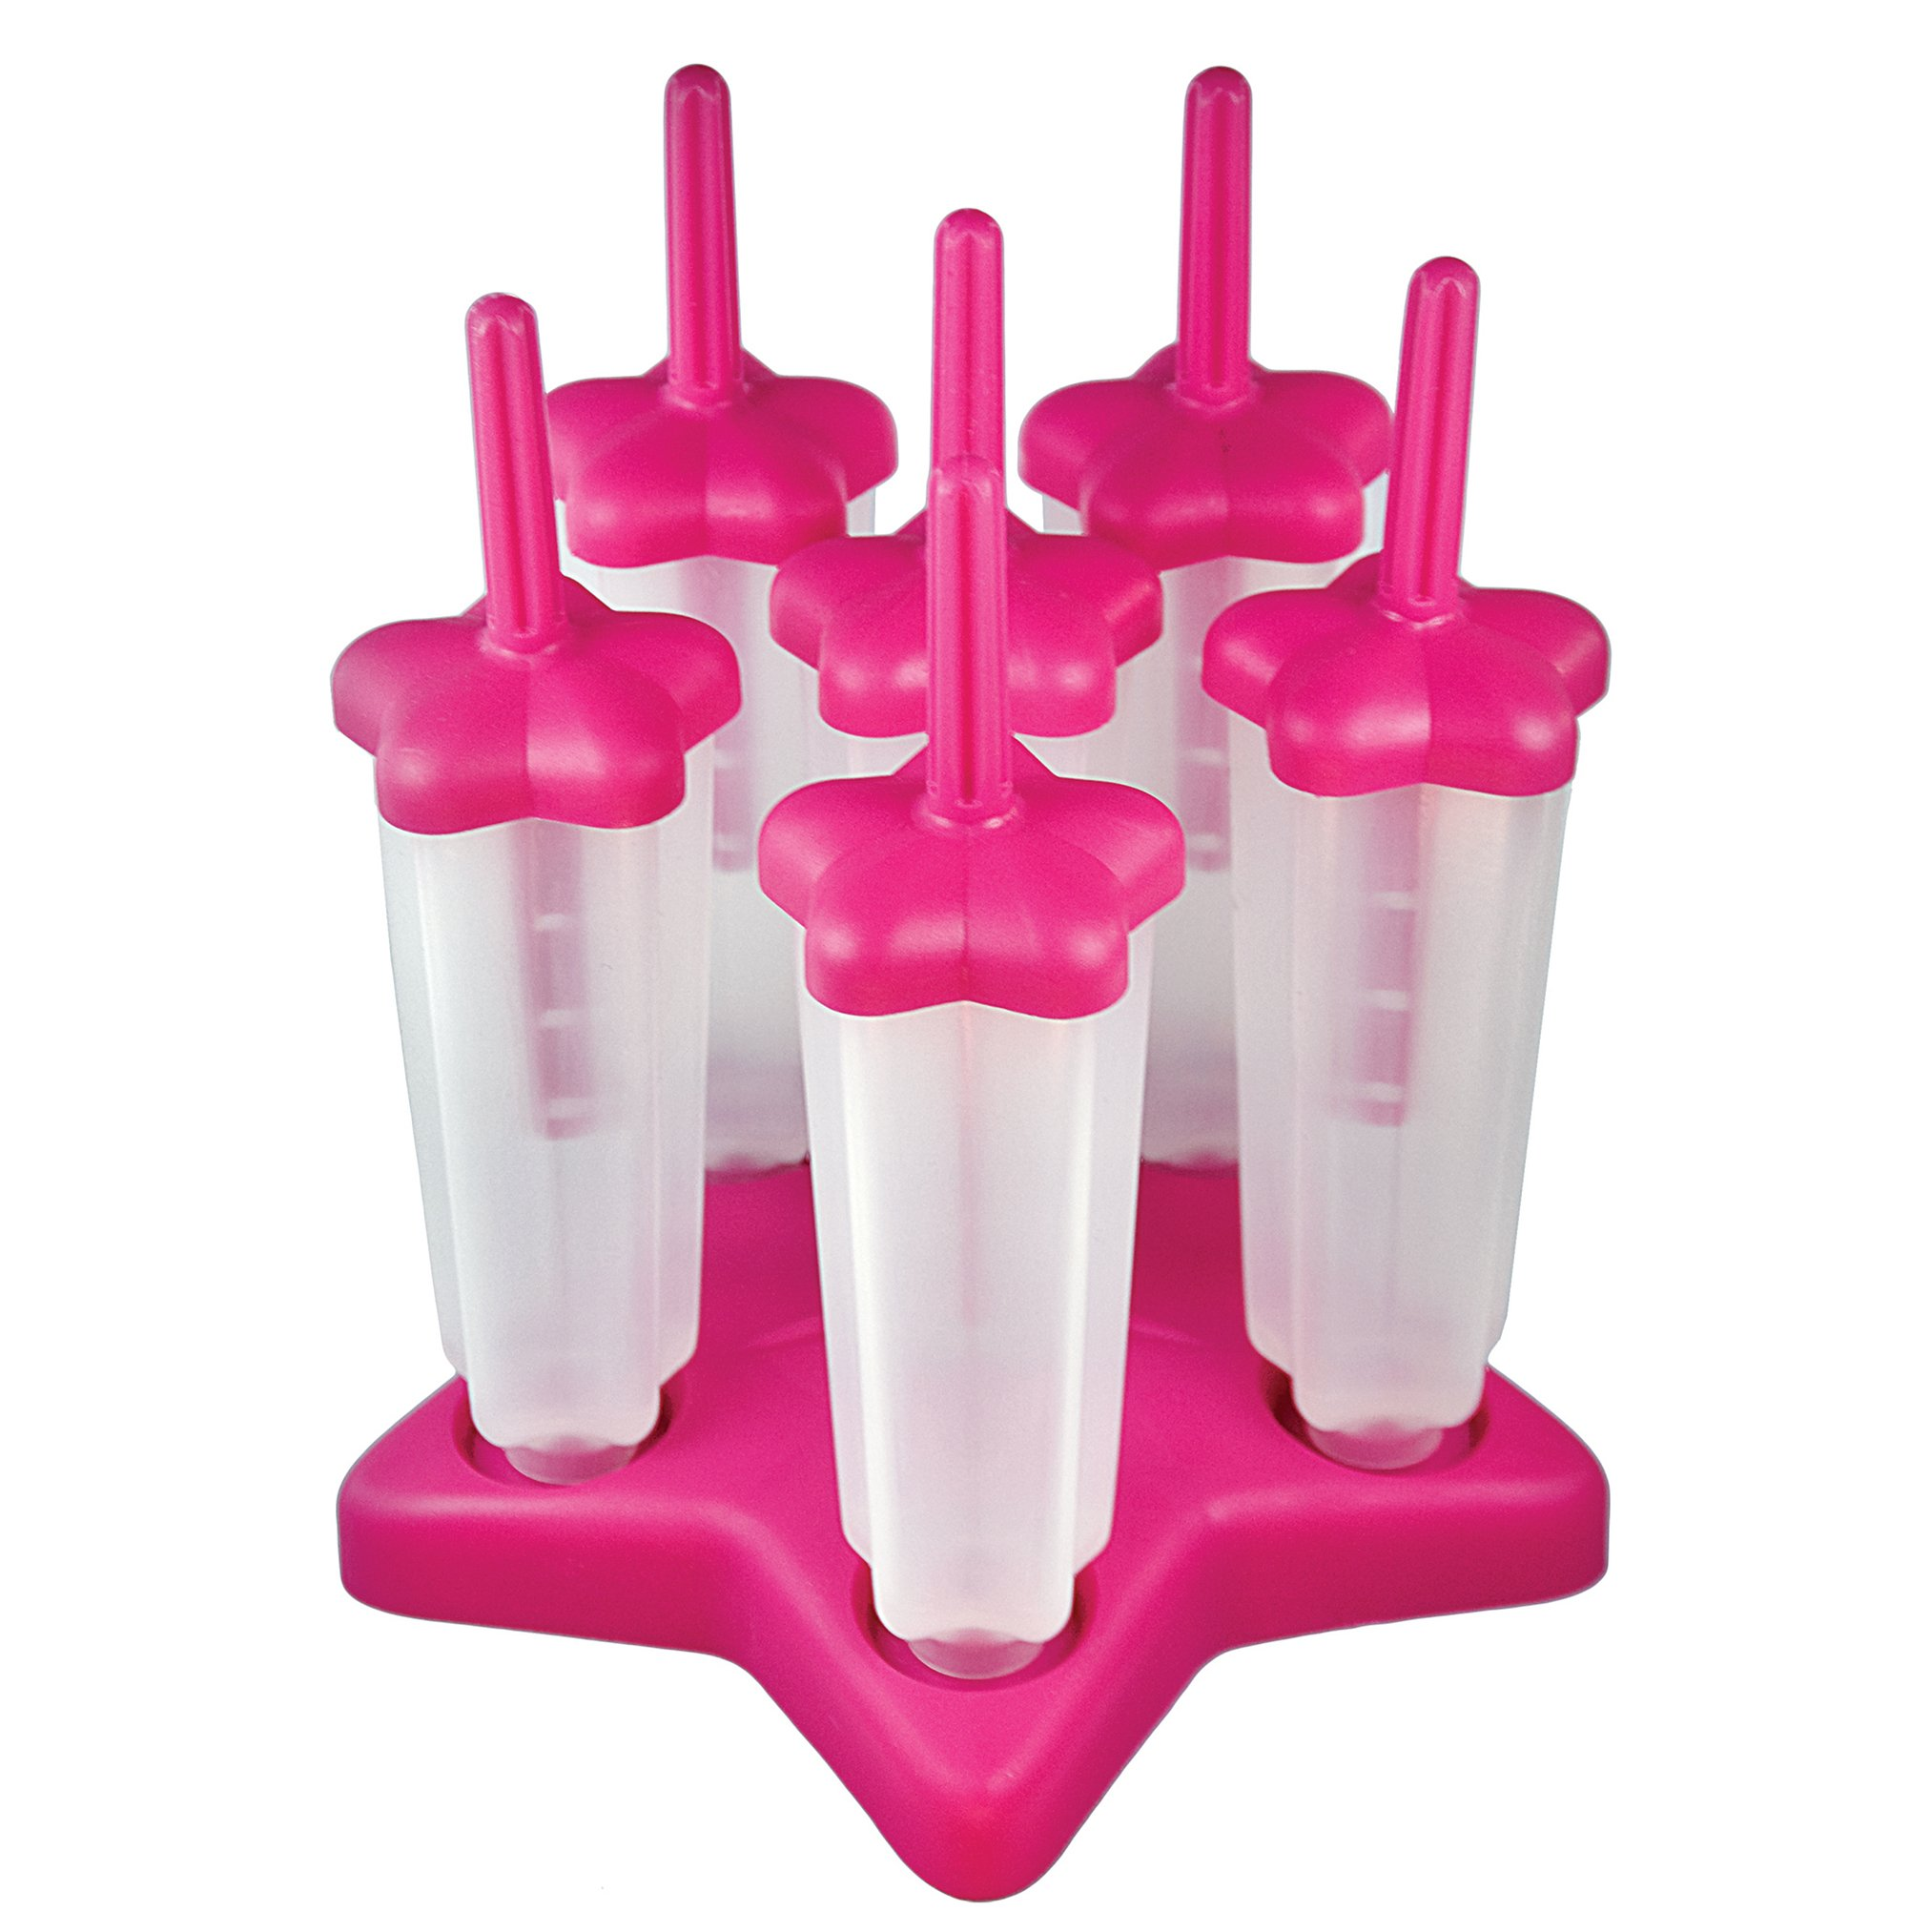 Tovolo Star Pop Molds with Drip Guard, Anti-Tip Base, Pink - Set of 6 by Tovolo (Image #1)